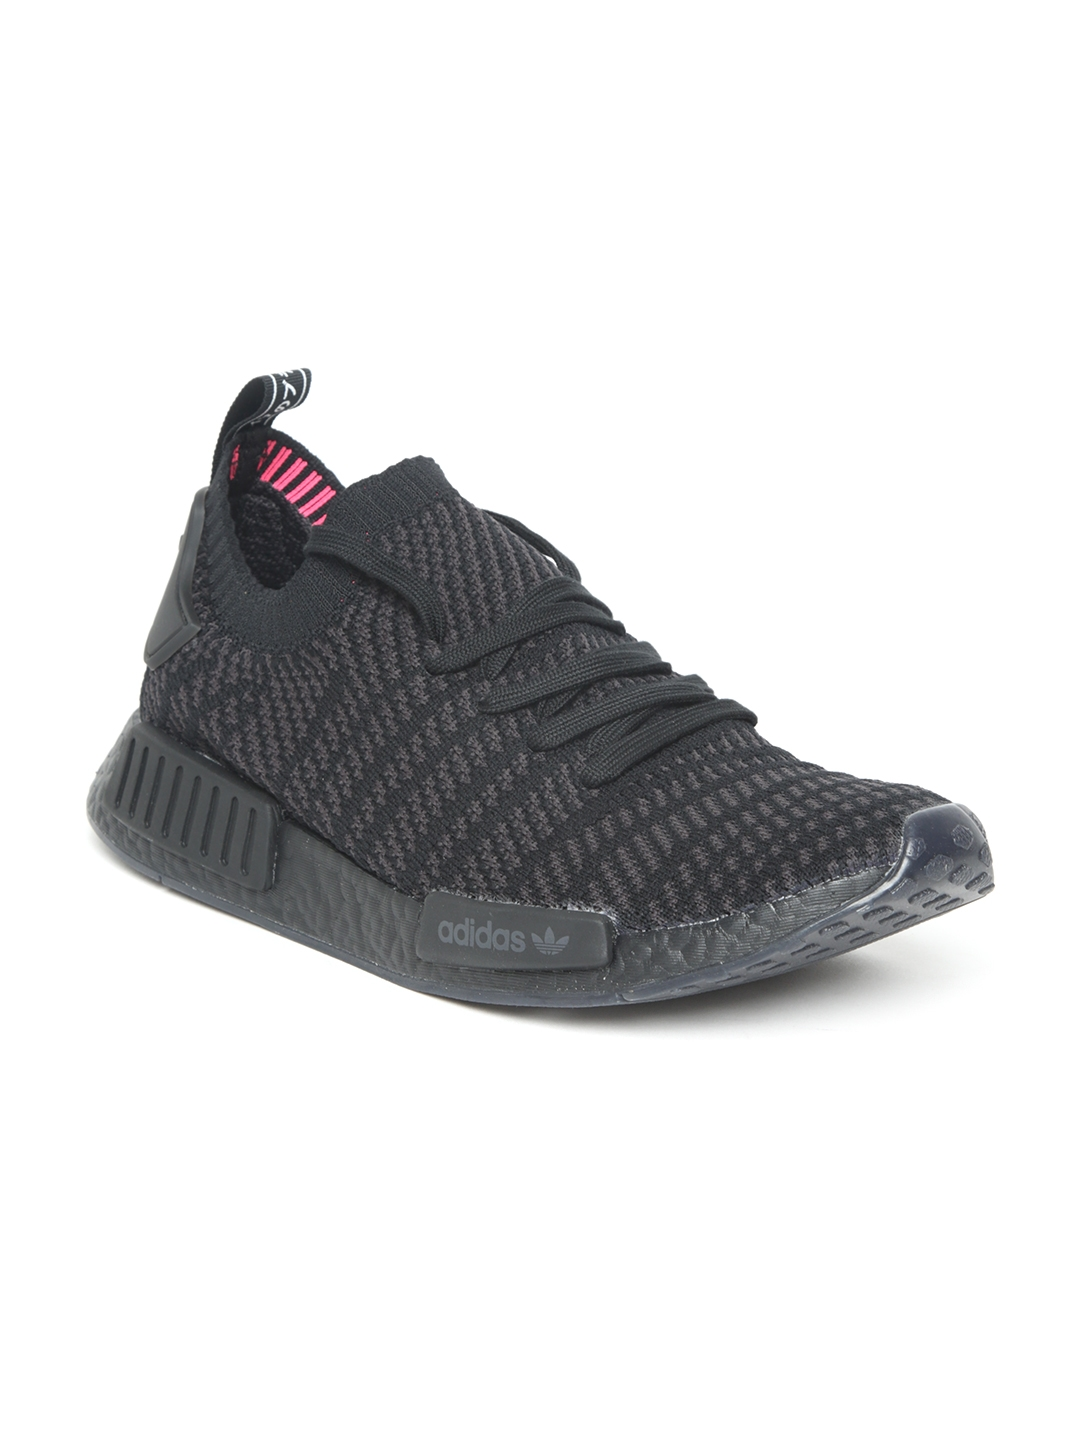 e5d29e32e ADIDAS Originals Men Black   Charcoal Grey NMD R1 STLT PRIMEKNIT Striped  Sneakers